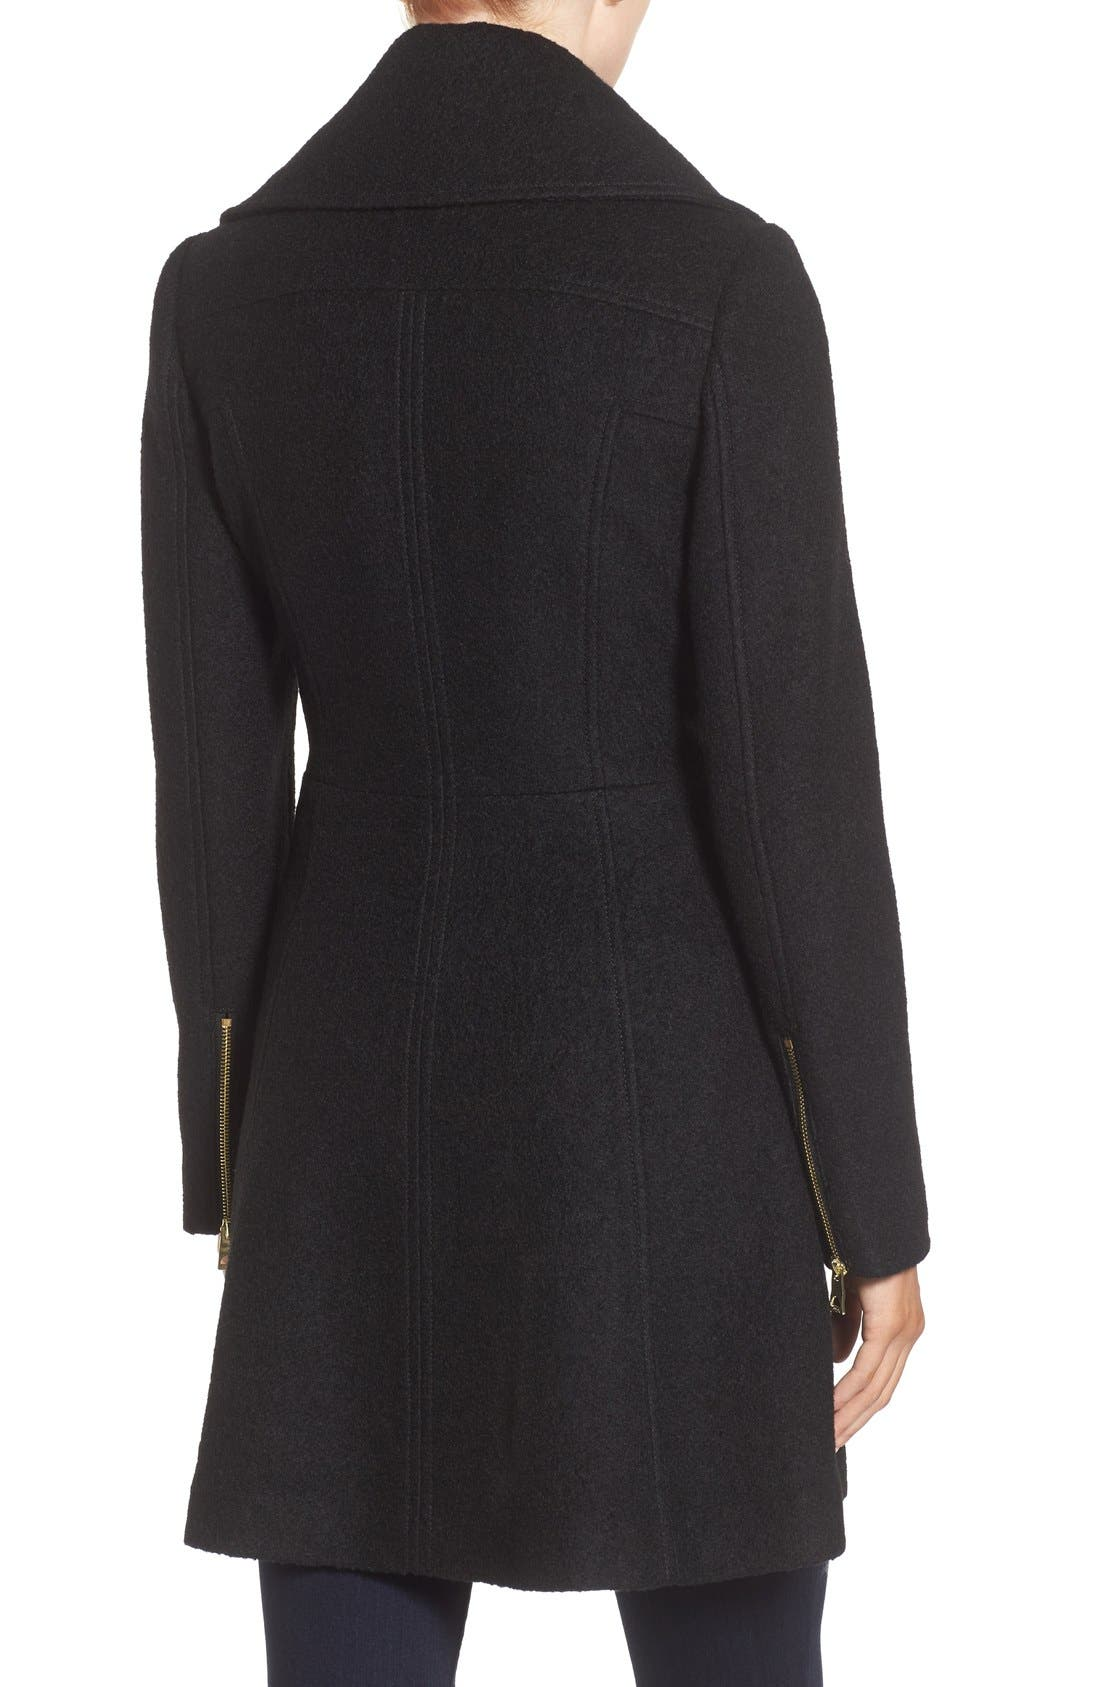 GUESS, Envelope Collar Double Breasted Coat, Alternate thumbnail 3, color, 001